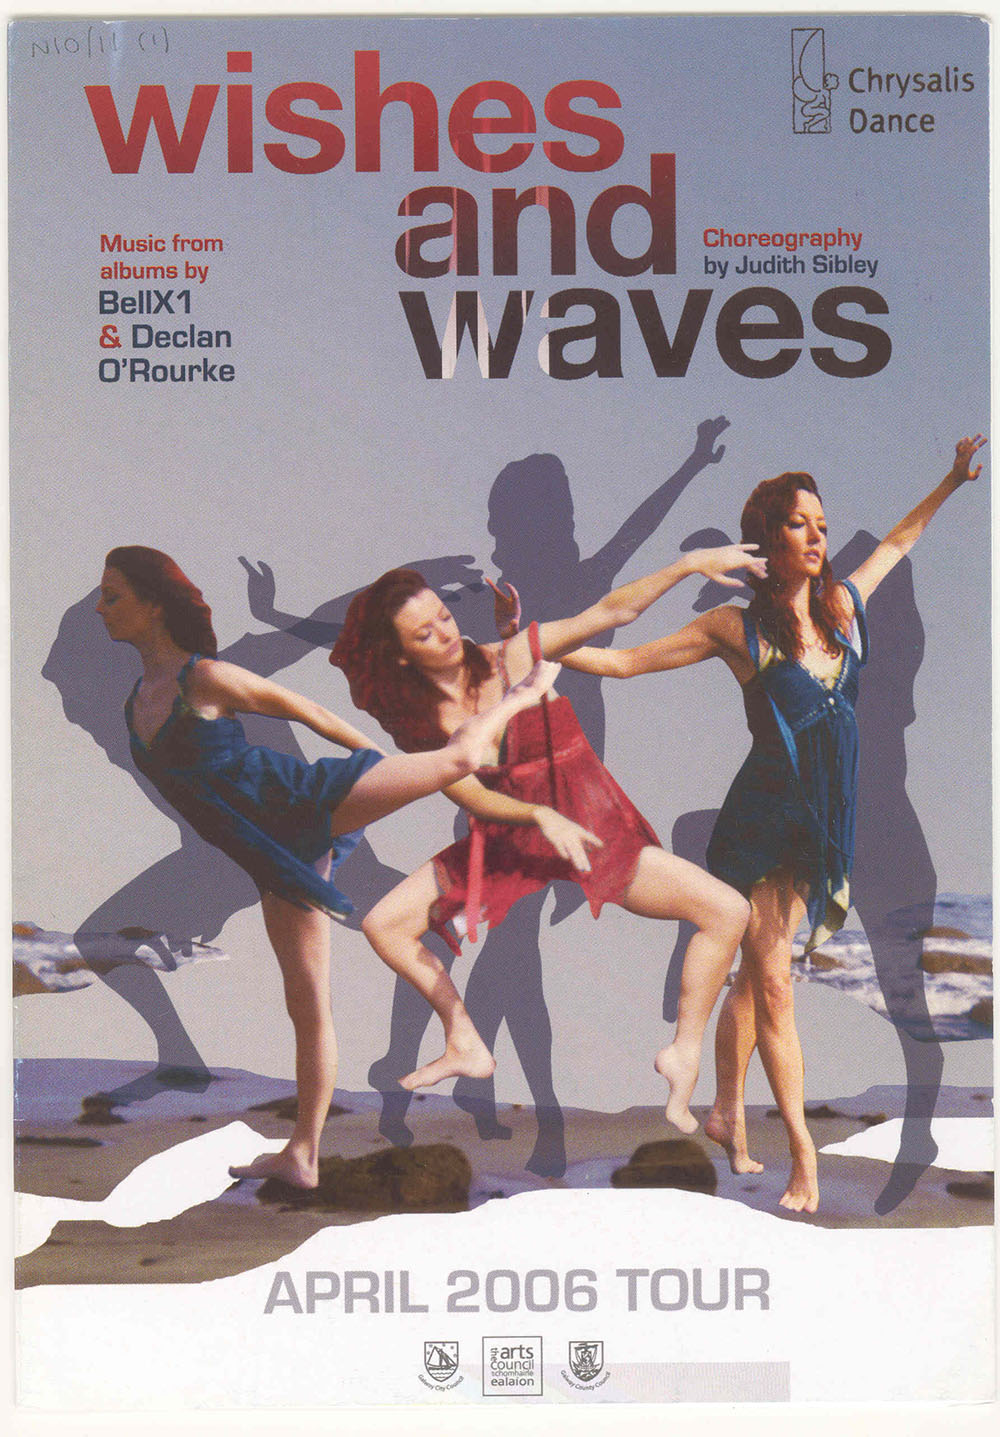 programme advertising Wishes and Waves performed by Chrysalis Dance, featuring artwork of three female dancers mid-dance